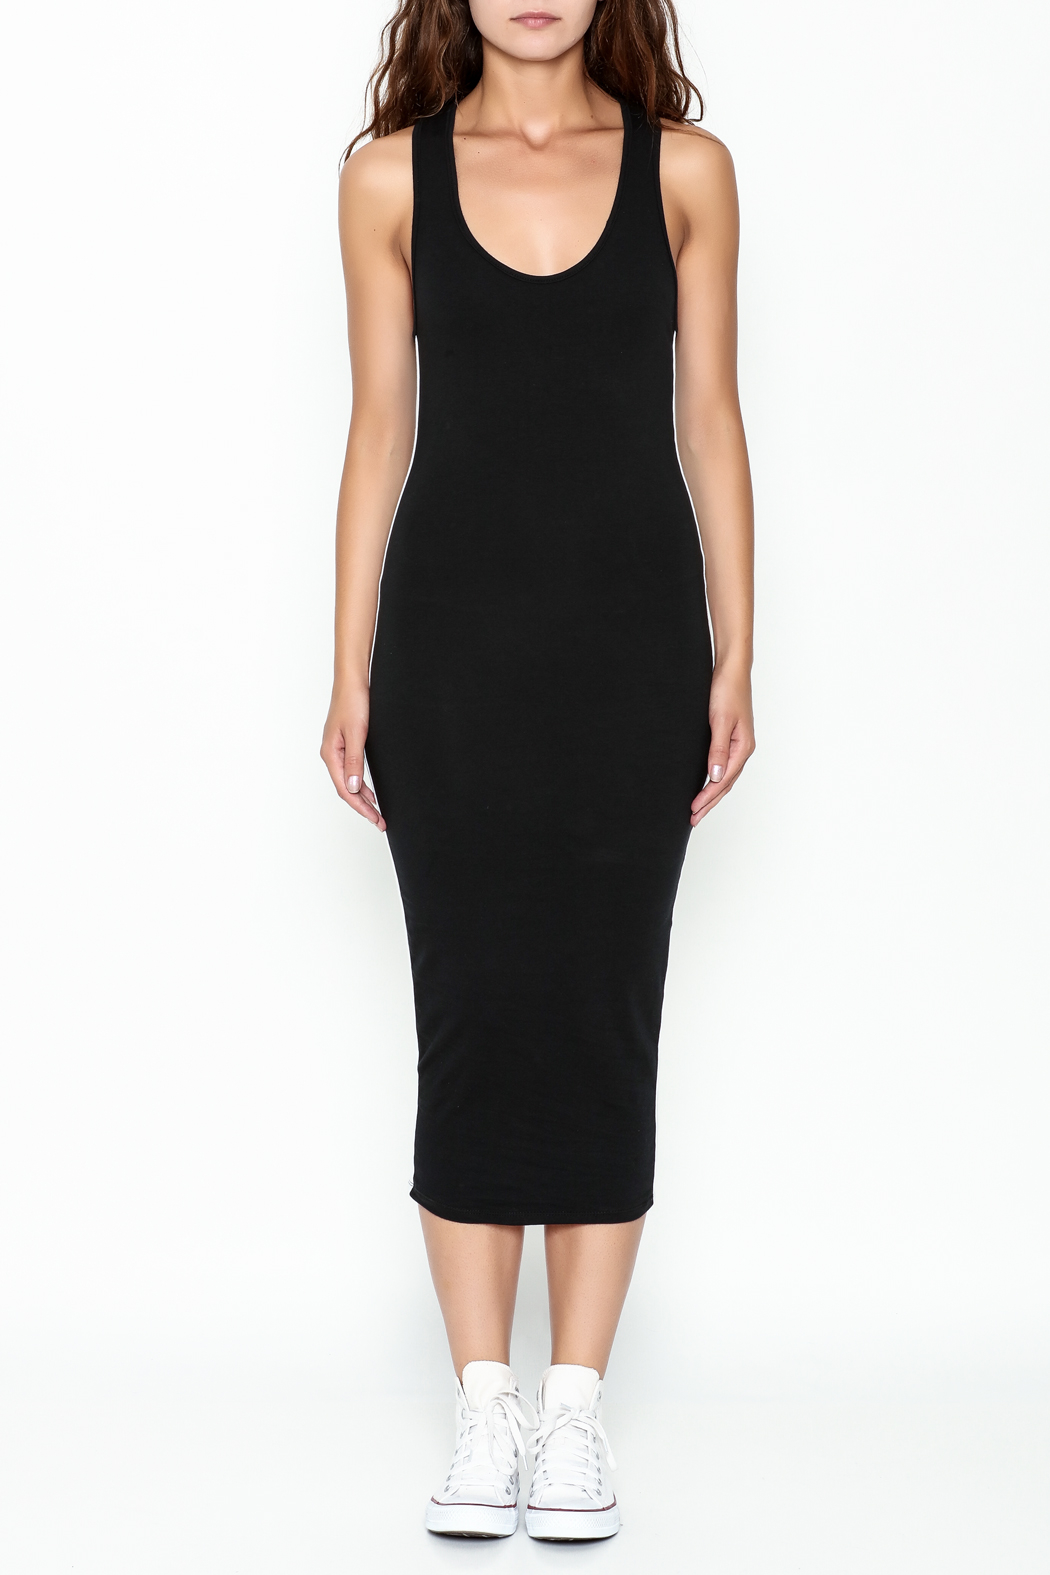 Rebdolls Back Racerback Midi Dress - Front Full Image